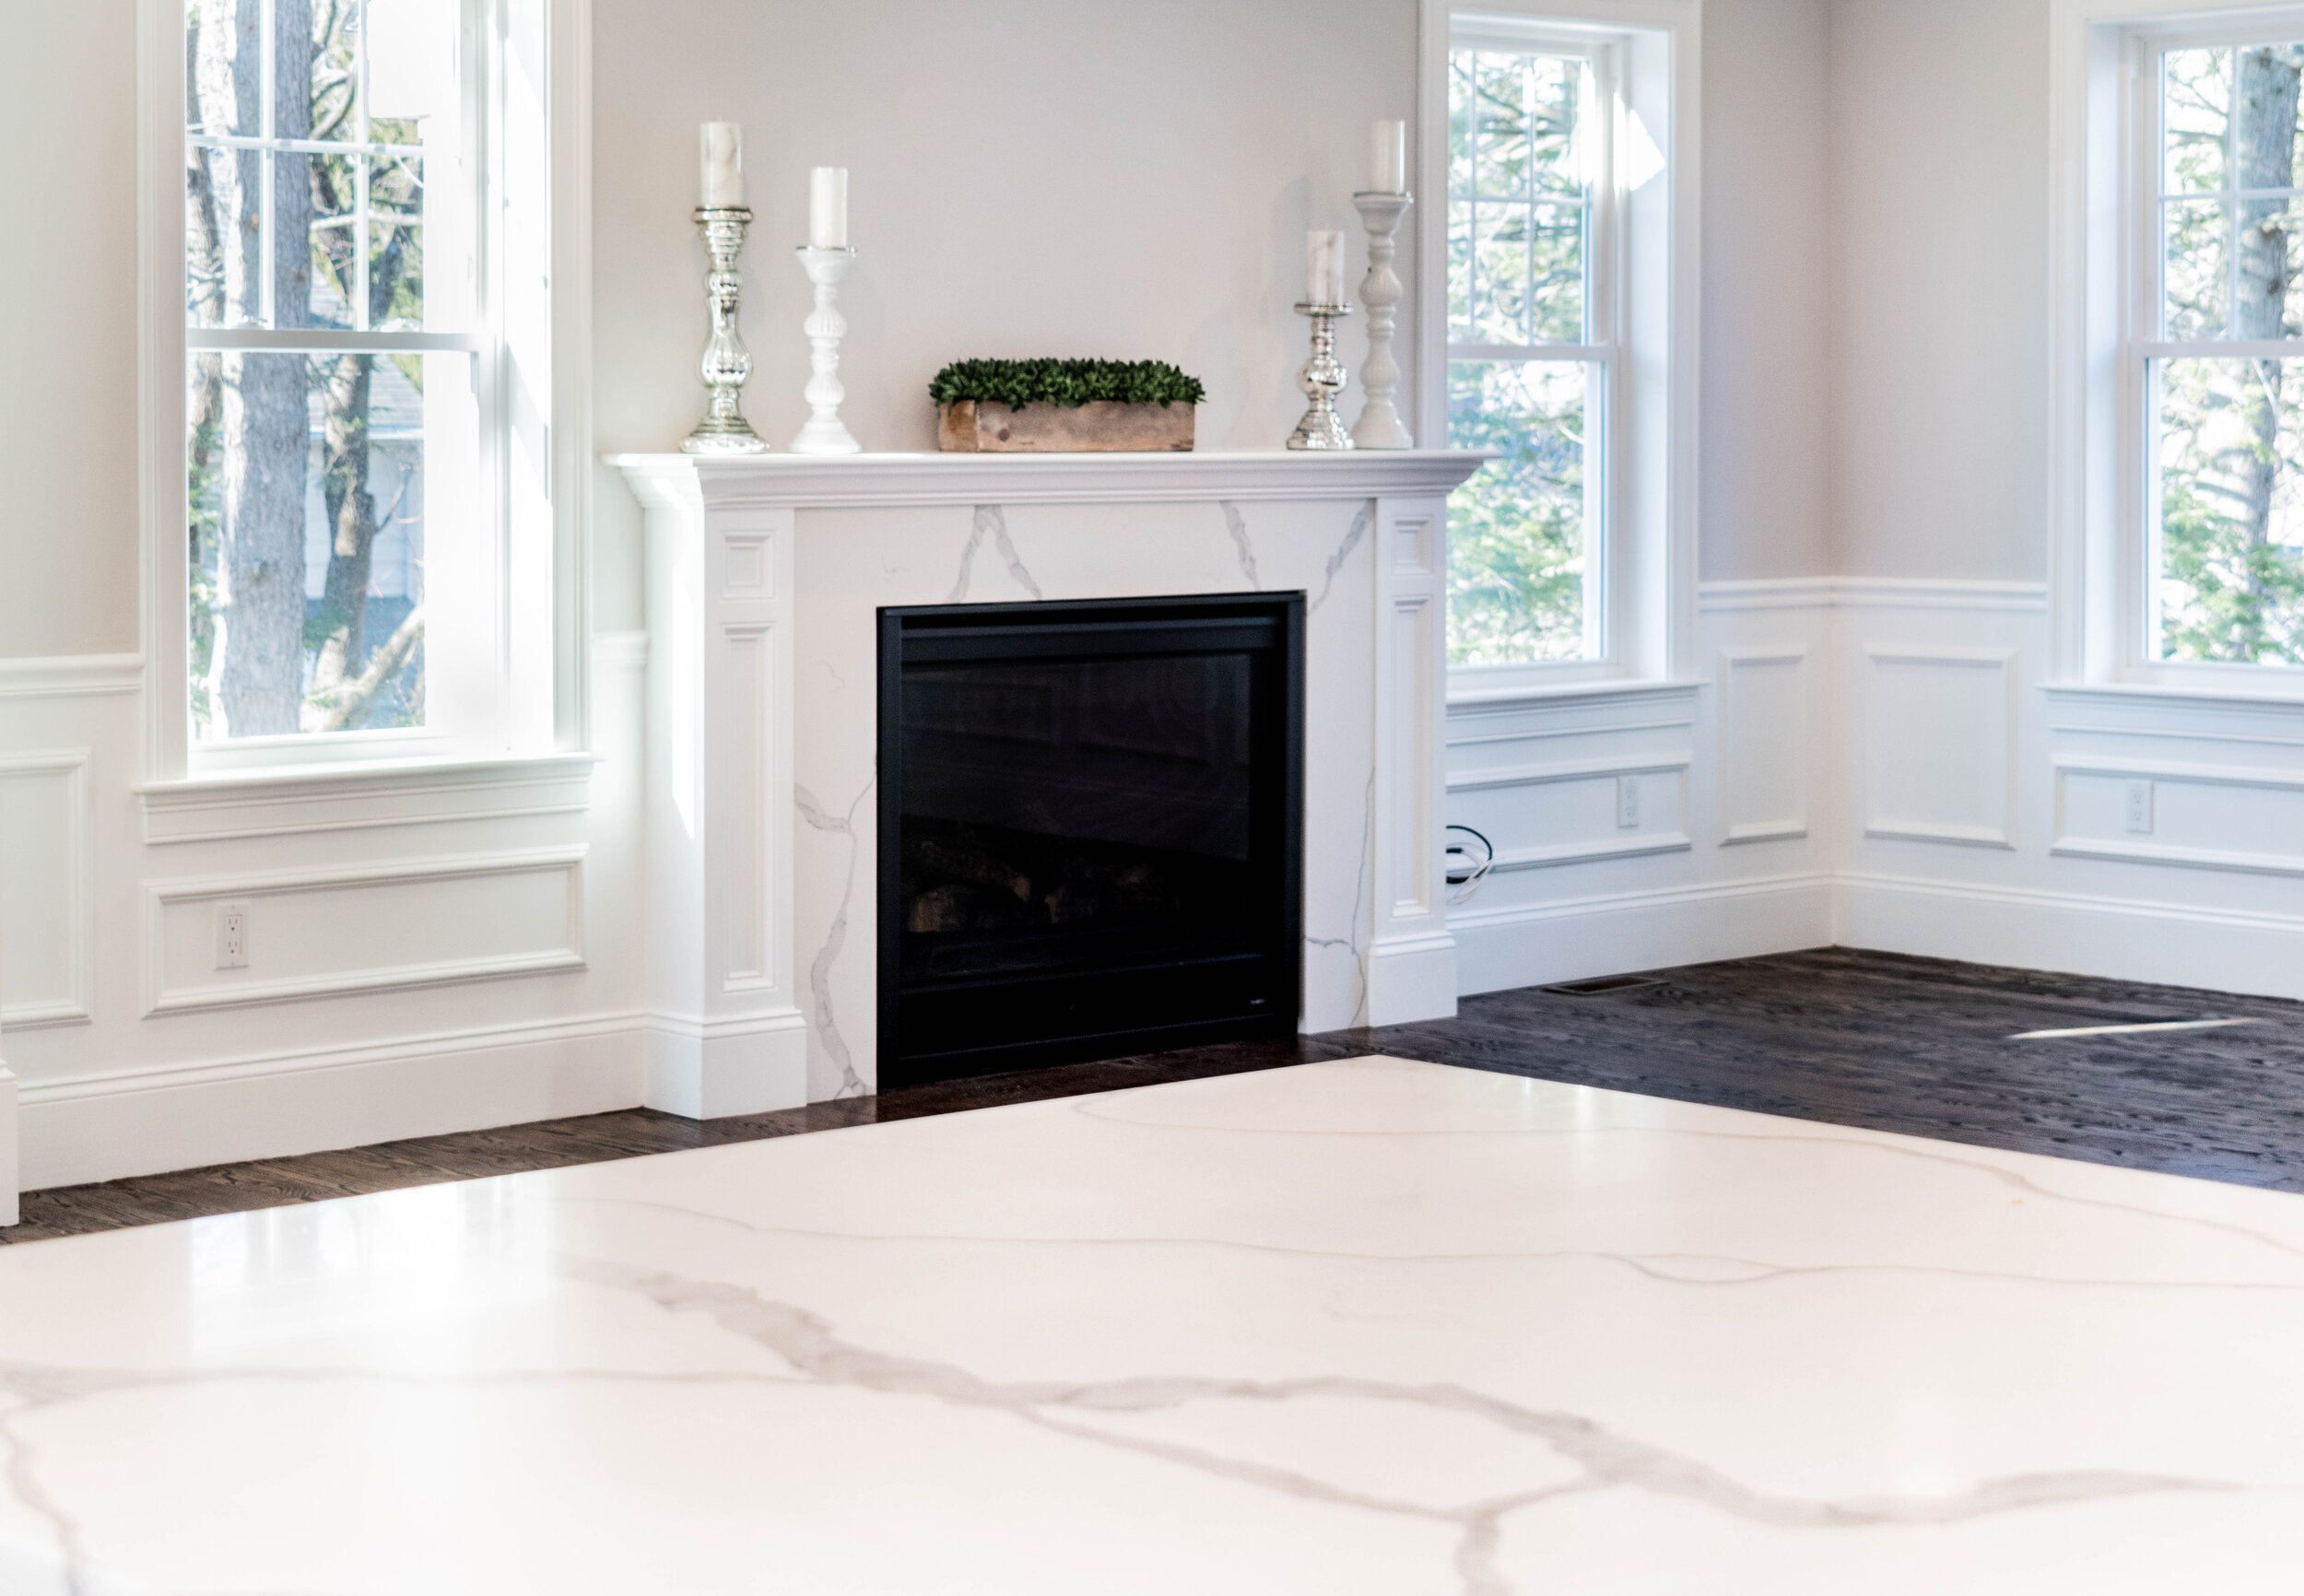 Material: Q-MSI Calacatta Classique (Bookmatched)  Thickness, Finish & Stone Type: 3CM Polished Quartz  Edge: Eased